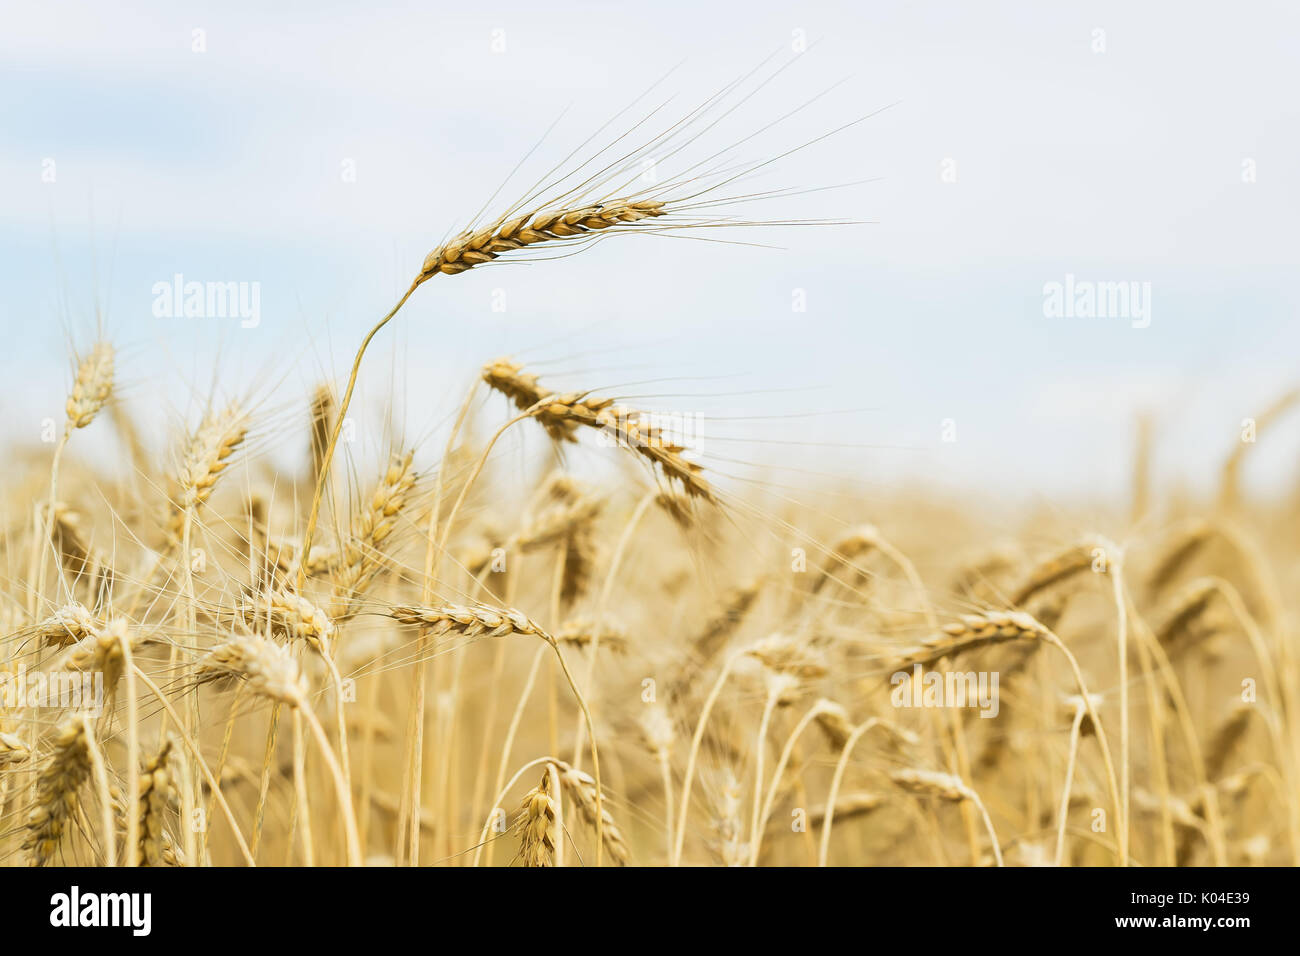 Ripe cereal ears close-up on hot summer afternoon on background of yellow field and blue sky - Stock Image